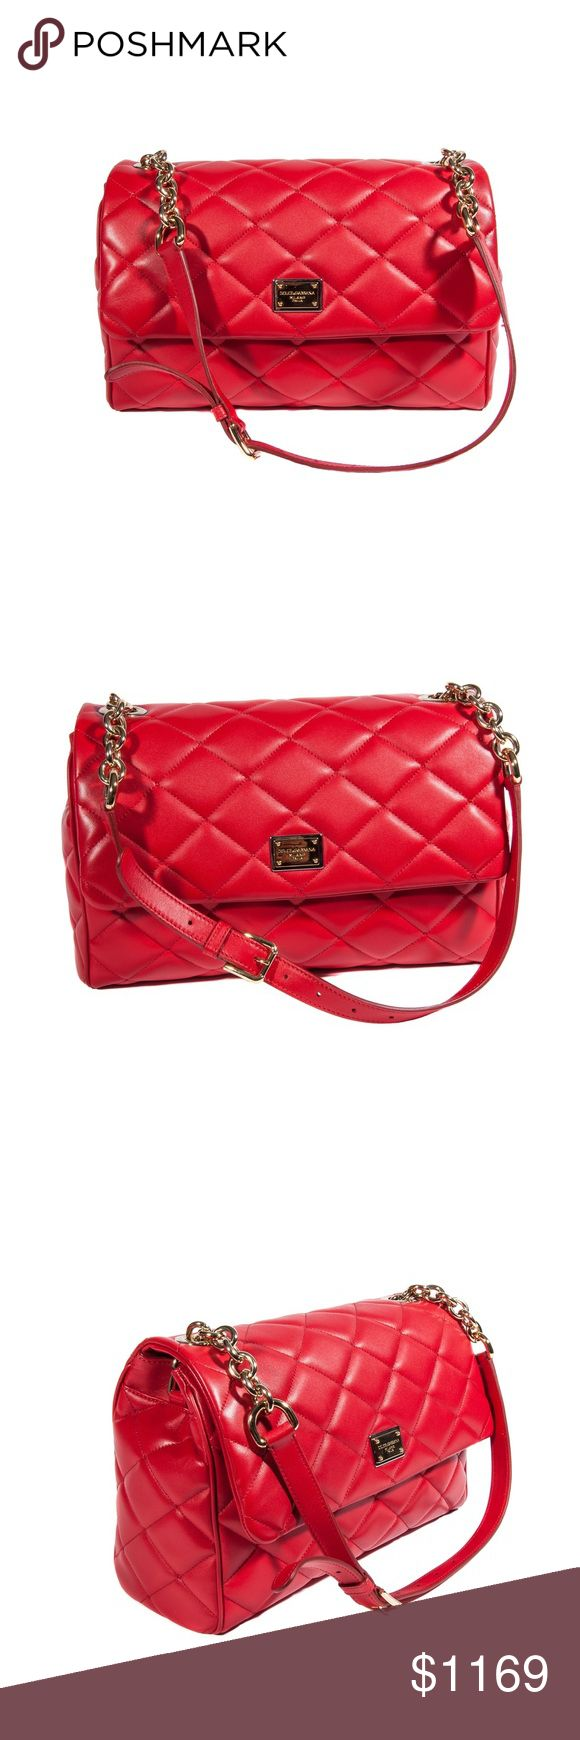 Dolce&Gabbana Red Quilted Shoulder Bag Dolce&Gabbana Red Quilted Shoulder Bag. Product details: Fancy shoulder bag. Great choice for your office outfits. Outside: leather quilted bag, metal logo plate on the front, flap with two magnetic snaps, long leather strap with metal chains. Inside: animal printed lining, one main compartment, a zipper pocket, two open pockets. Dolce & Gabbana Bags Shoulder Bags